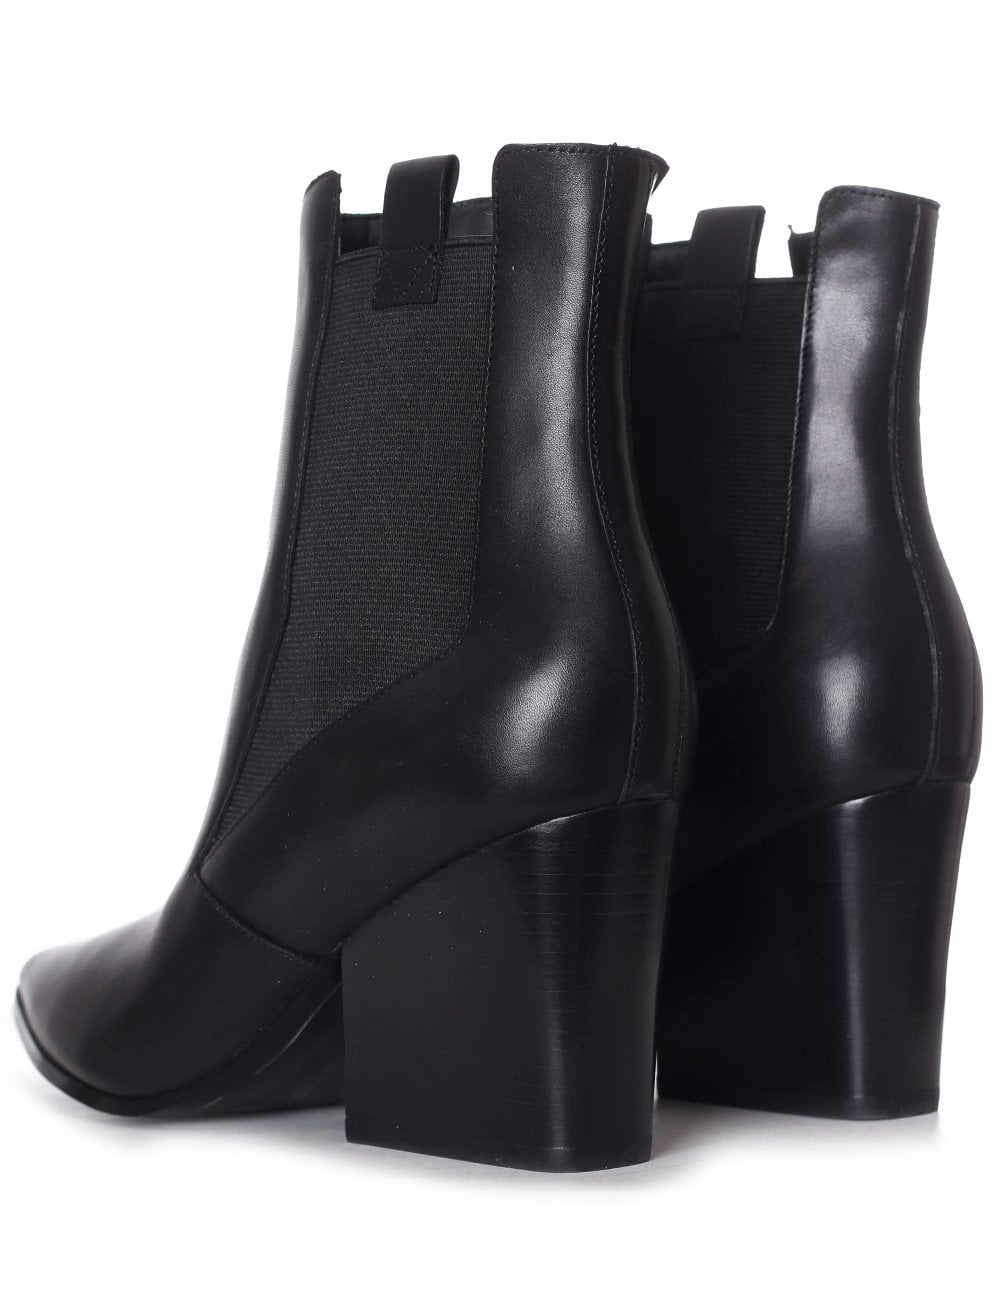 e43af90ddf95 Kendall   Kylie Women s Finigan Pointed Block Heel Ankle Boot